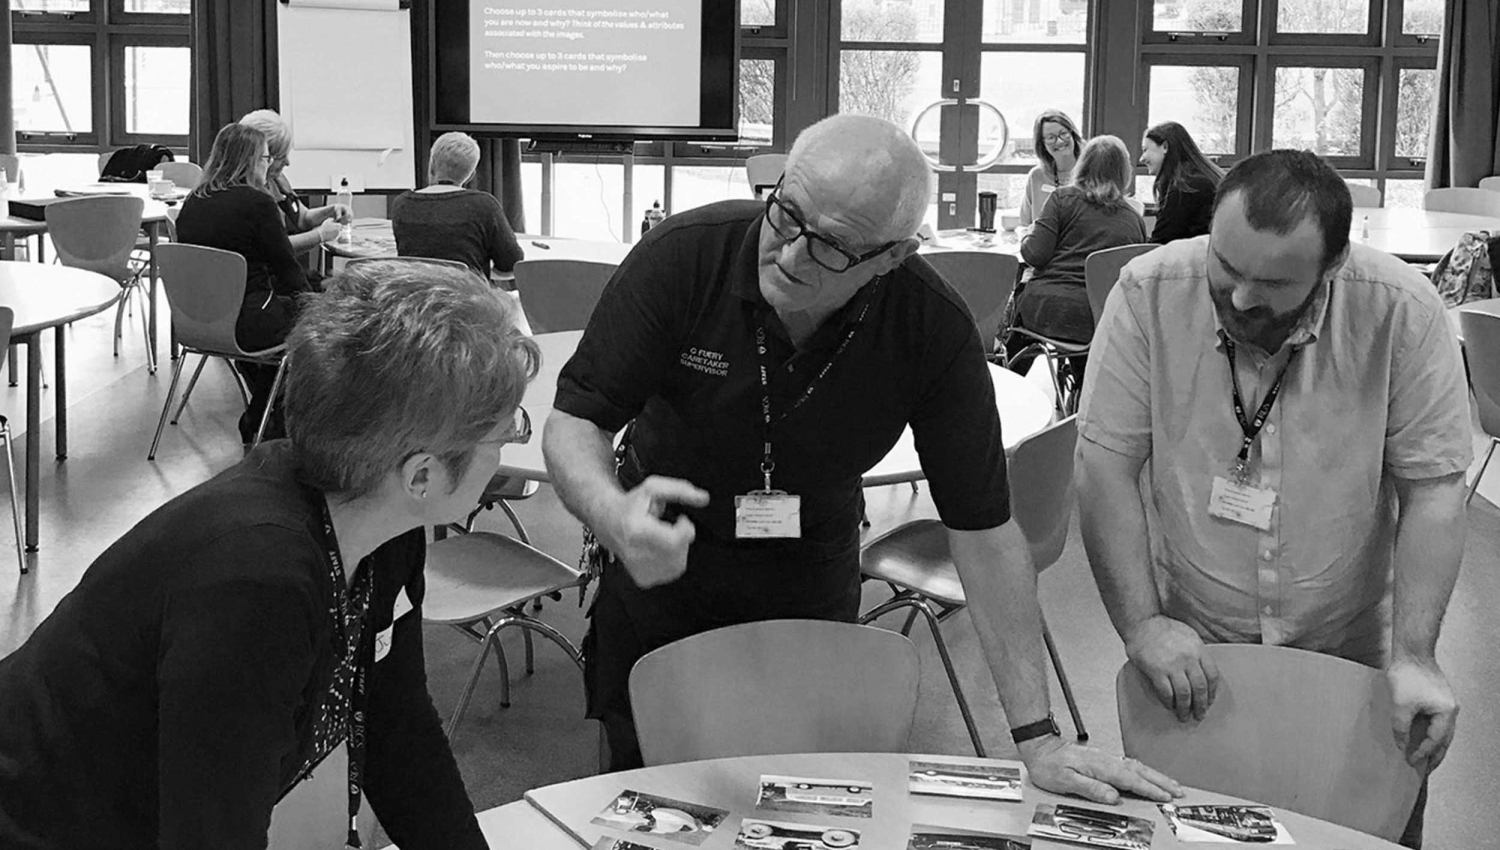 RGS Newcastle brand workshop for independent school brand facilitated by Altogether Creative.